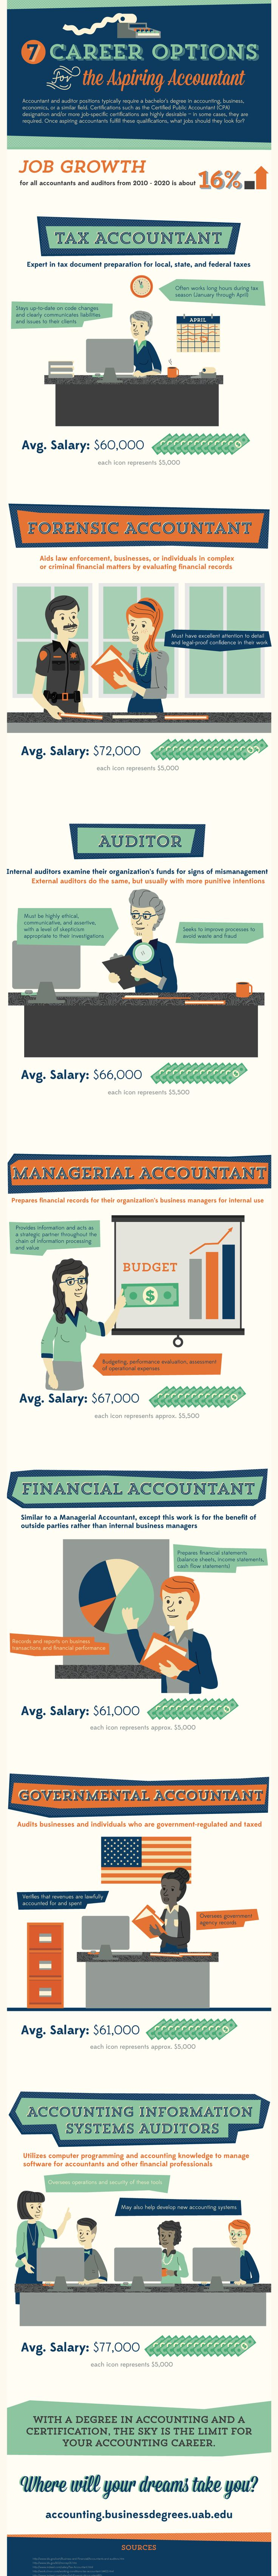 The infographic highlights the various job opportunities that are available to aspiring accountants